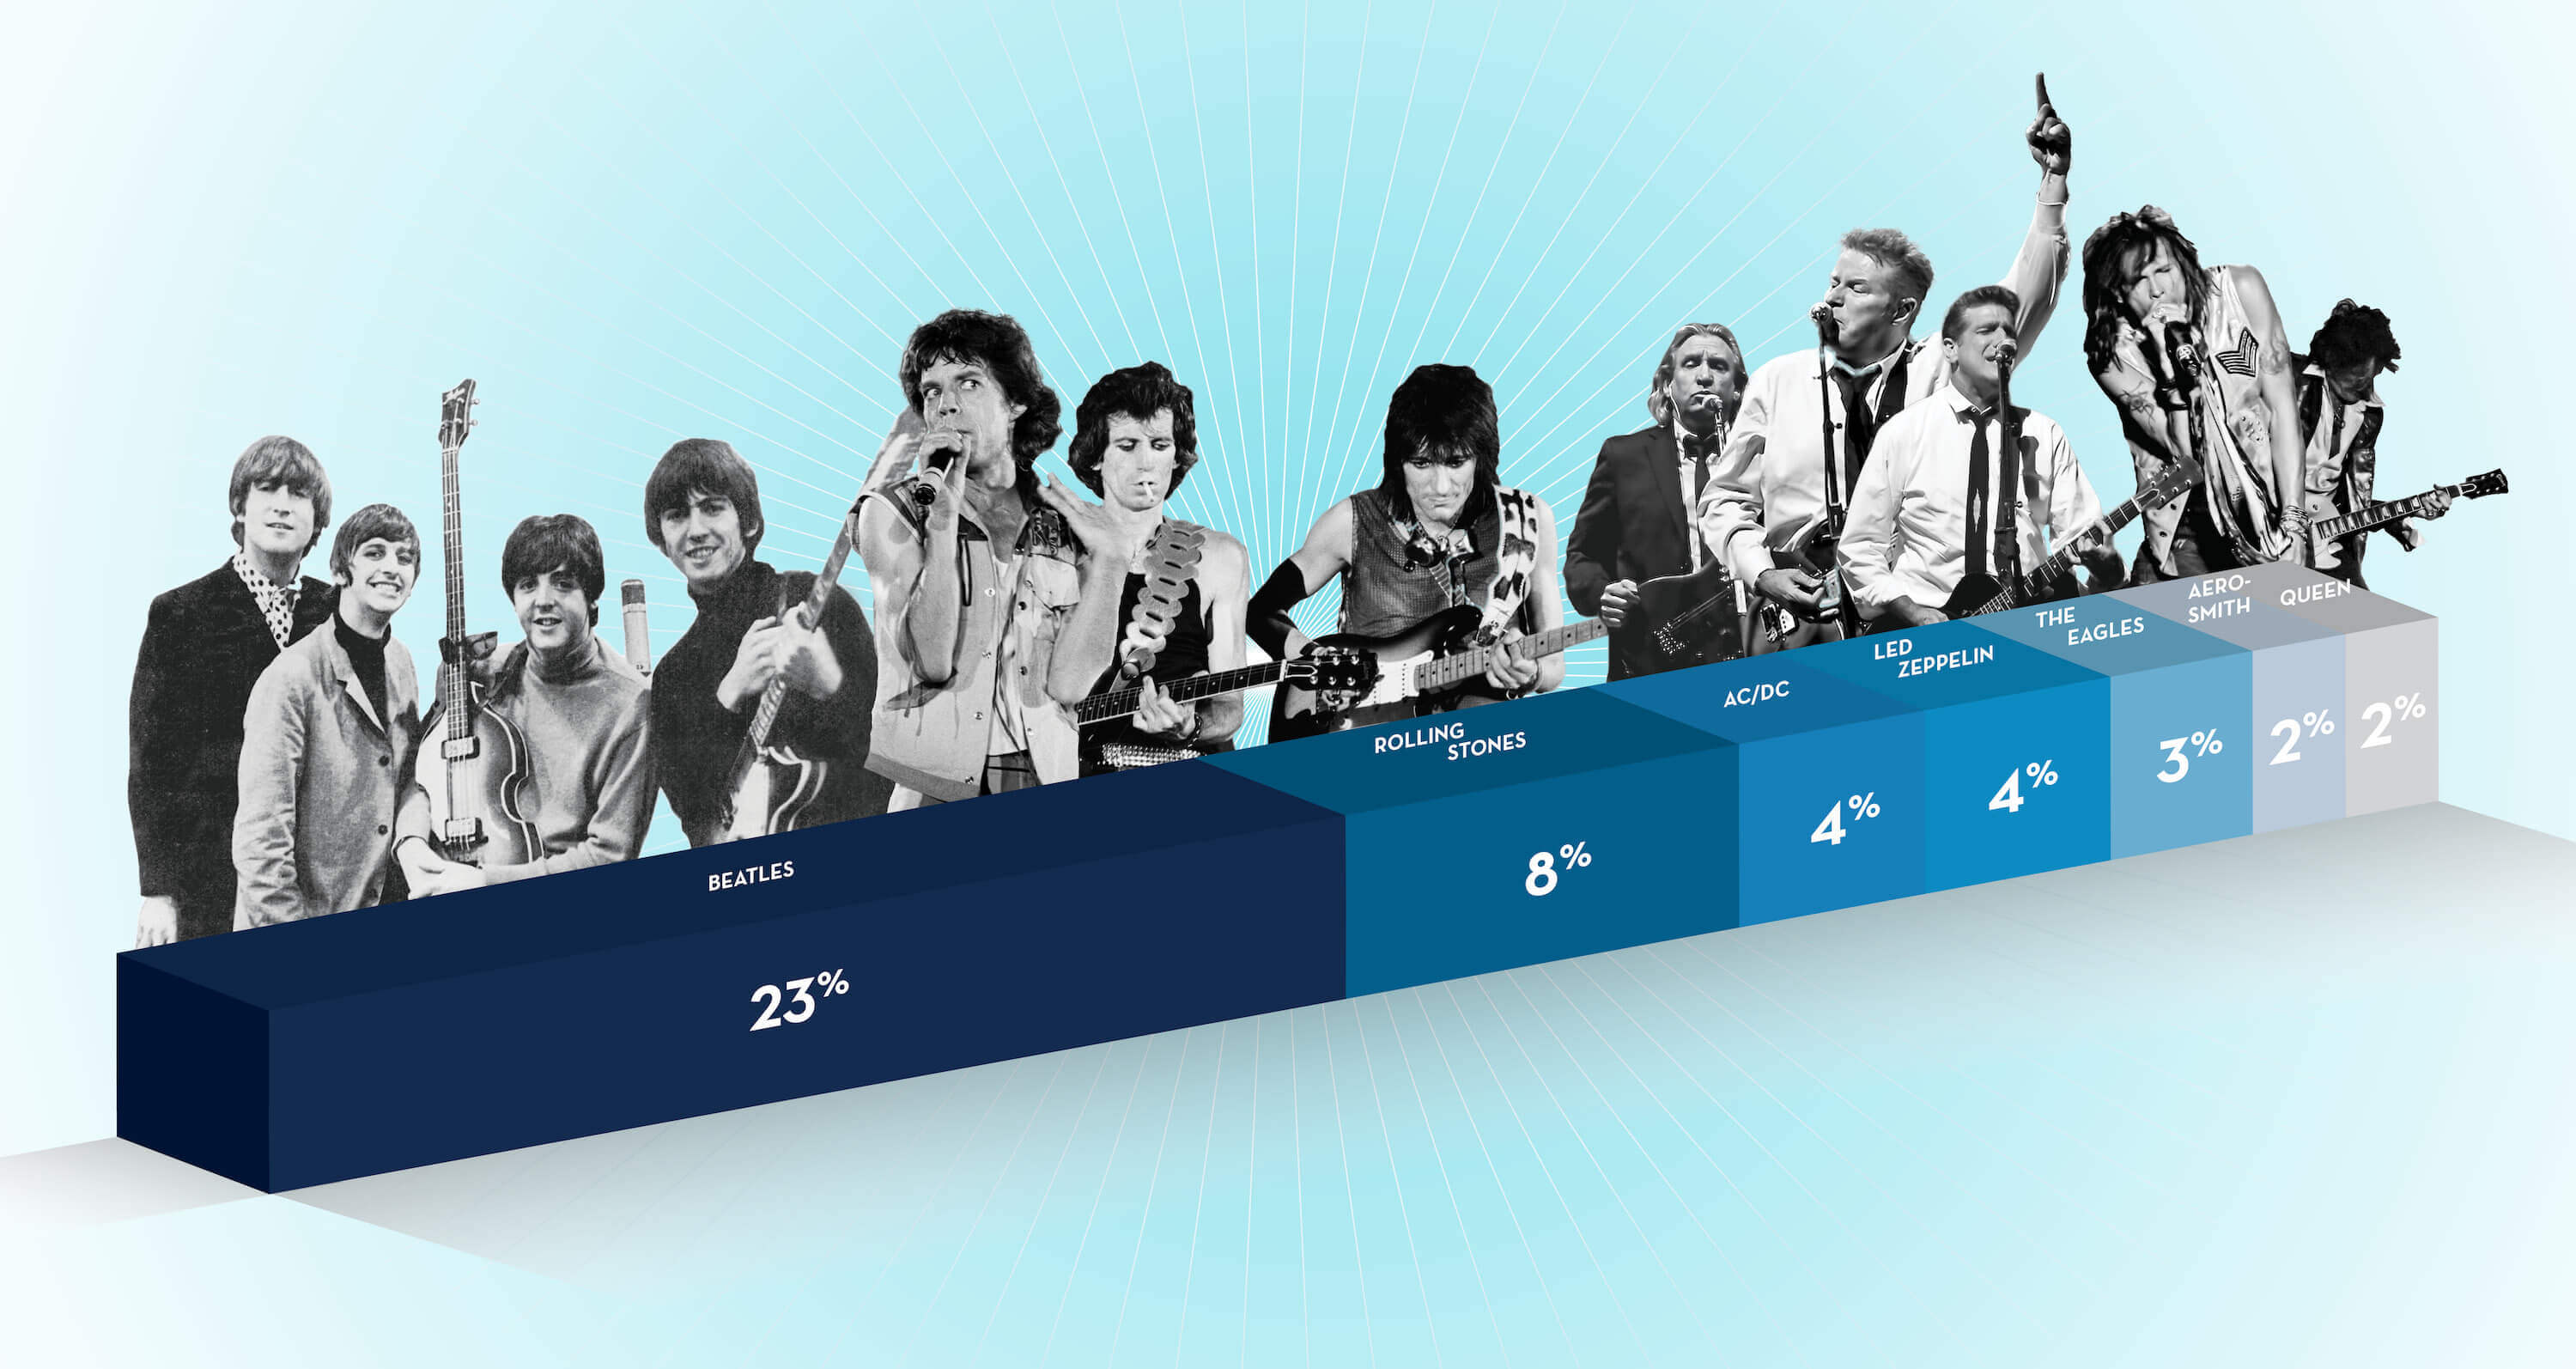 A bar graph showing the percentage of respondents to a Monmouth University Poll asking who is the greatest rock band. The Beatles top with 23 percent, followed by the Rolling Stones at 8 percent, AC/DC at 4 percent, Led Zeppelin at 4 percent, The Eagles at 3 percent, Aerosmith at 2 percent, and Queen at 2 percent.